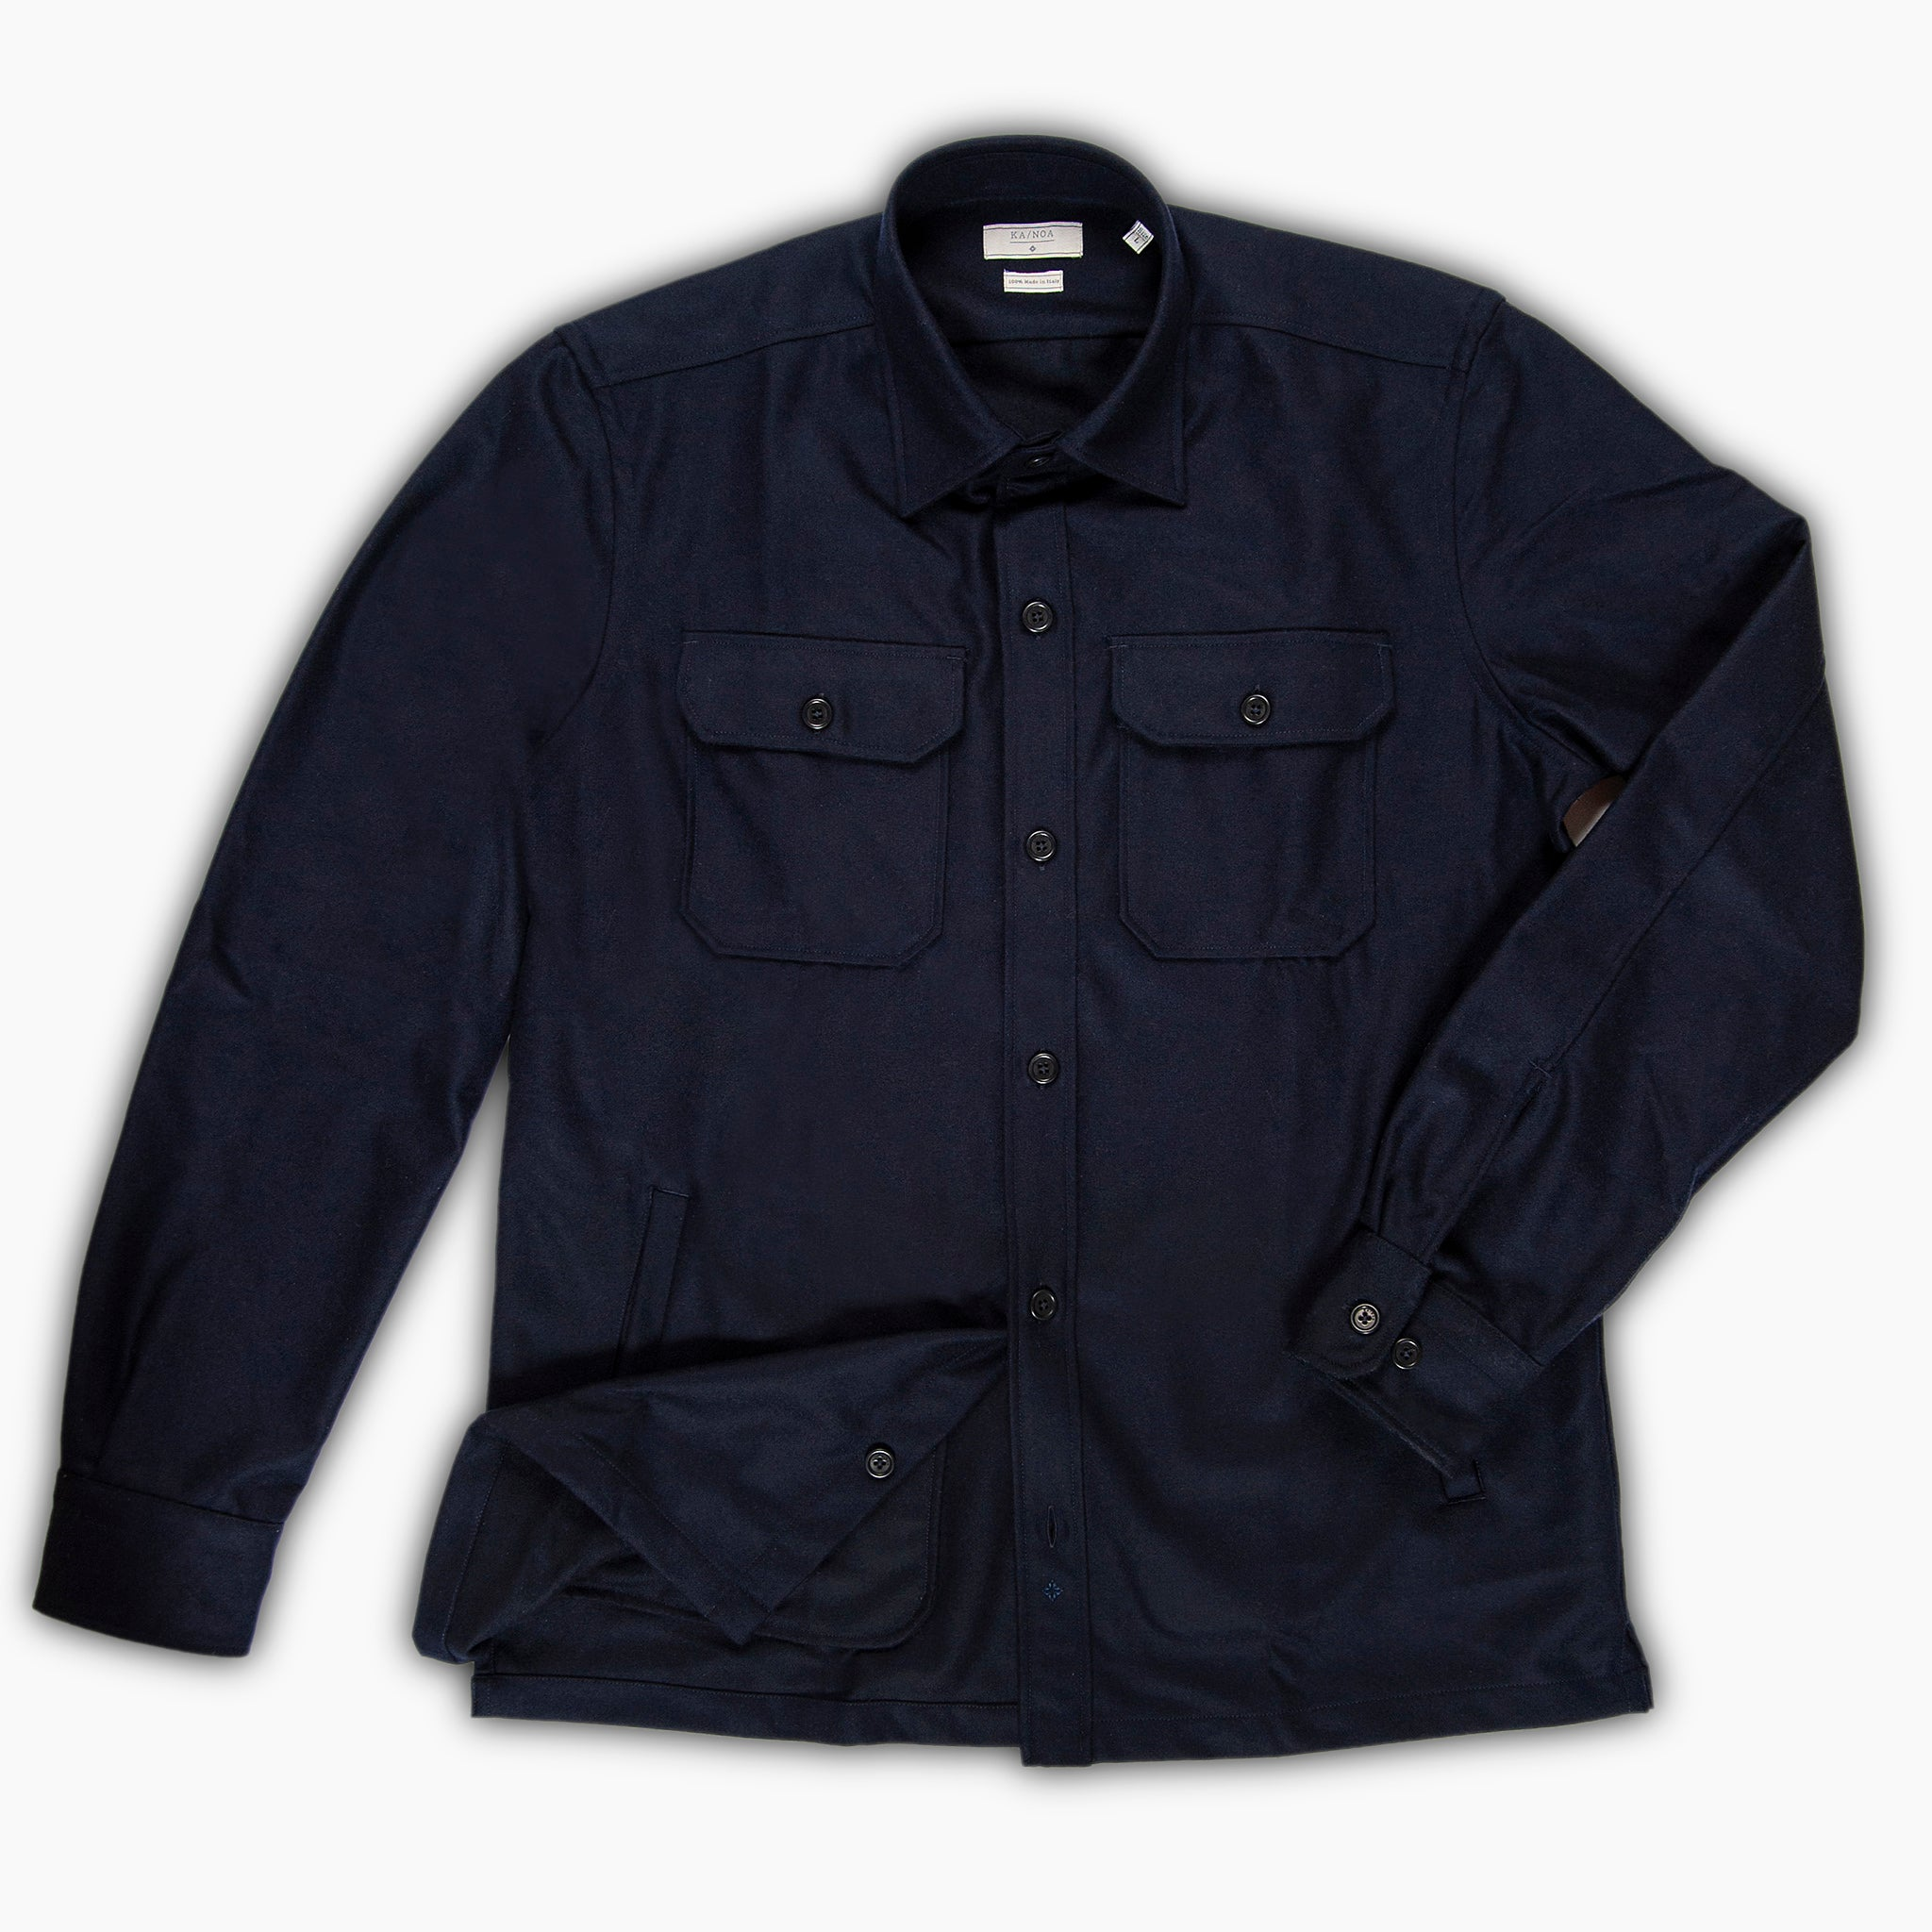 David Wool Outer Shirt (Dark blue)